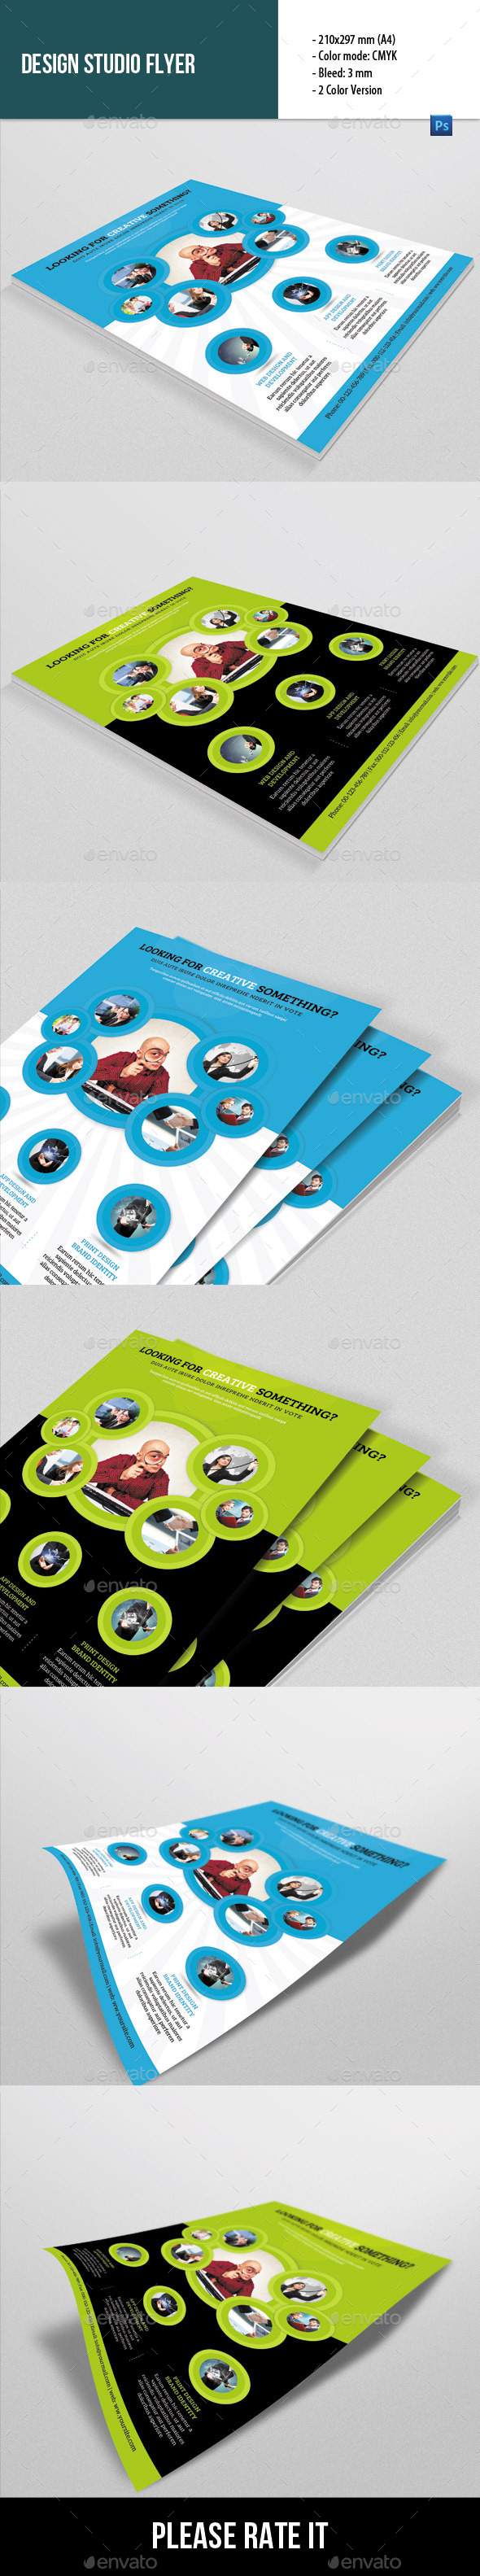 Flyer Template for Design Studio - Corporate Flyers